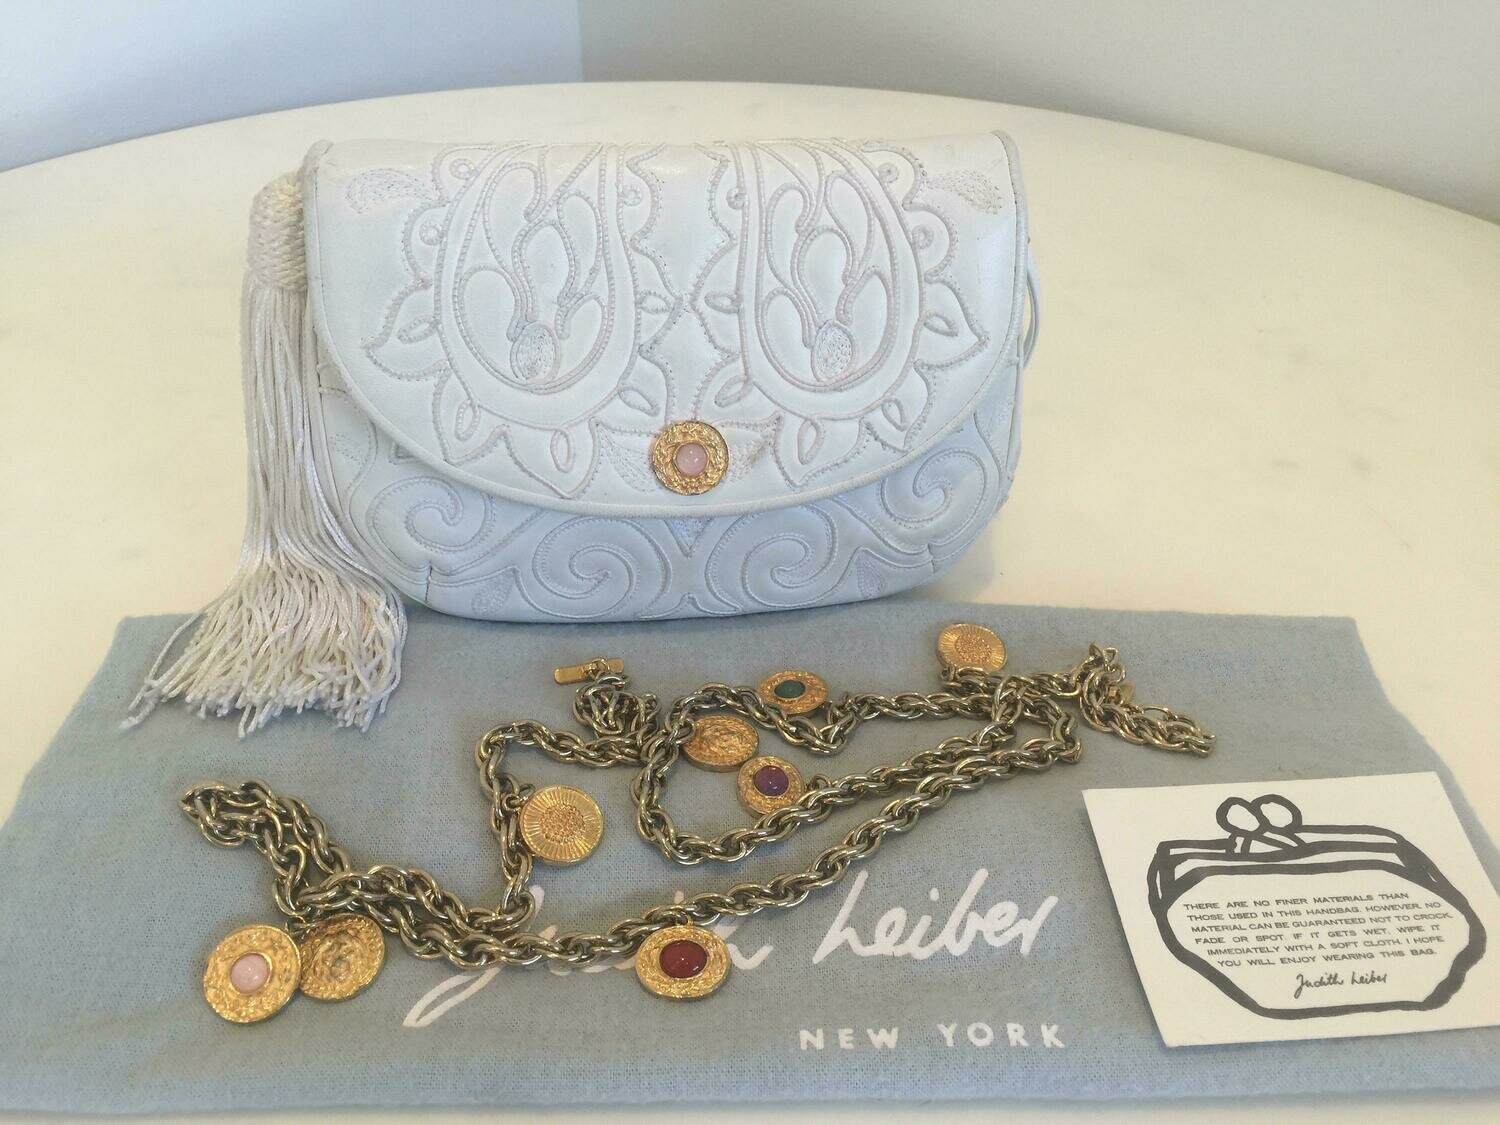 Vintage JUDITH LEIBER Embroidered Tassel White Leather Evening Bag Clutch Jeweled Crossbody